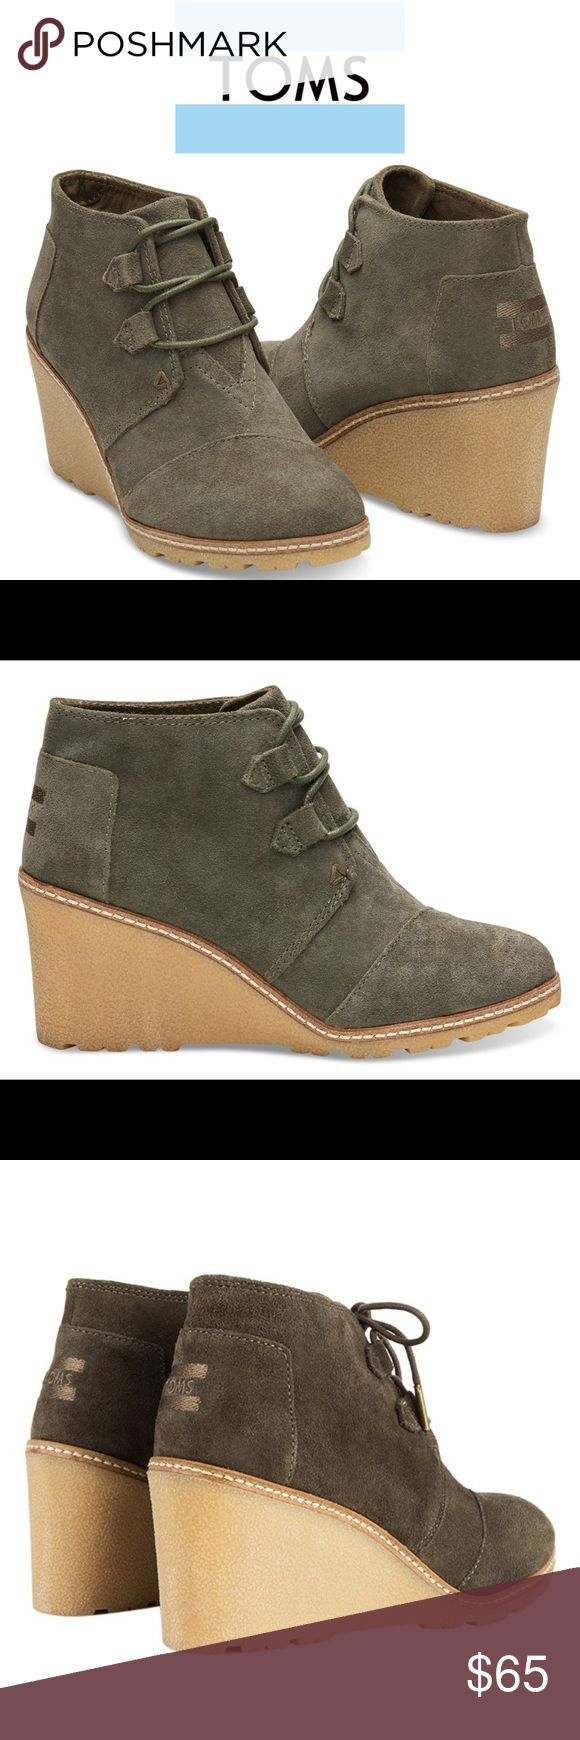 Desert Wedge Suede Boots NWT, Toms Desert Wedge booties in olive Suede.  Well designed with lots of details.  These booties will give you added height but are extremely comfortable.  Wear year round with almost anything!  Brand new, never been worn. Comes with Toms shoe bag.  I only have bottom of the shoe box, no top. TOMS Shoes Ankle Boots & Booties